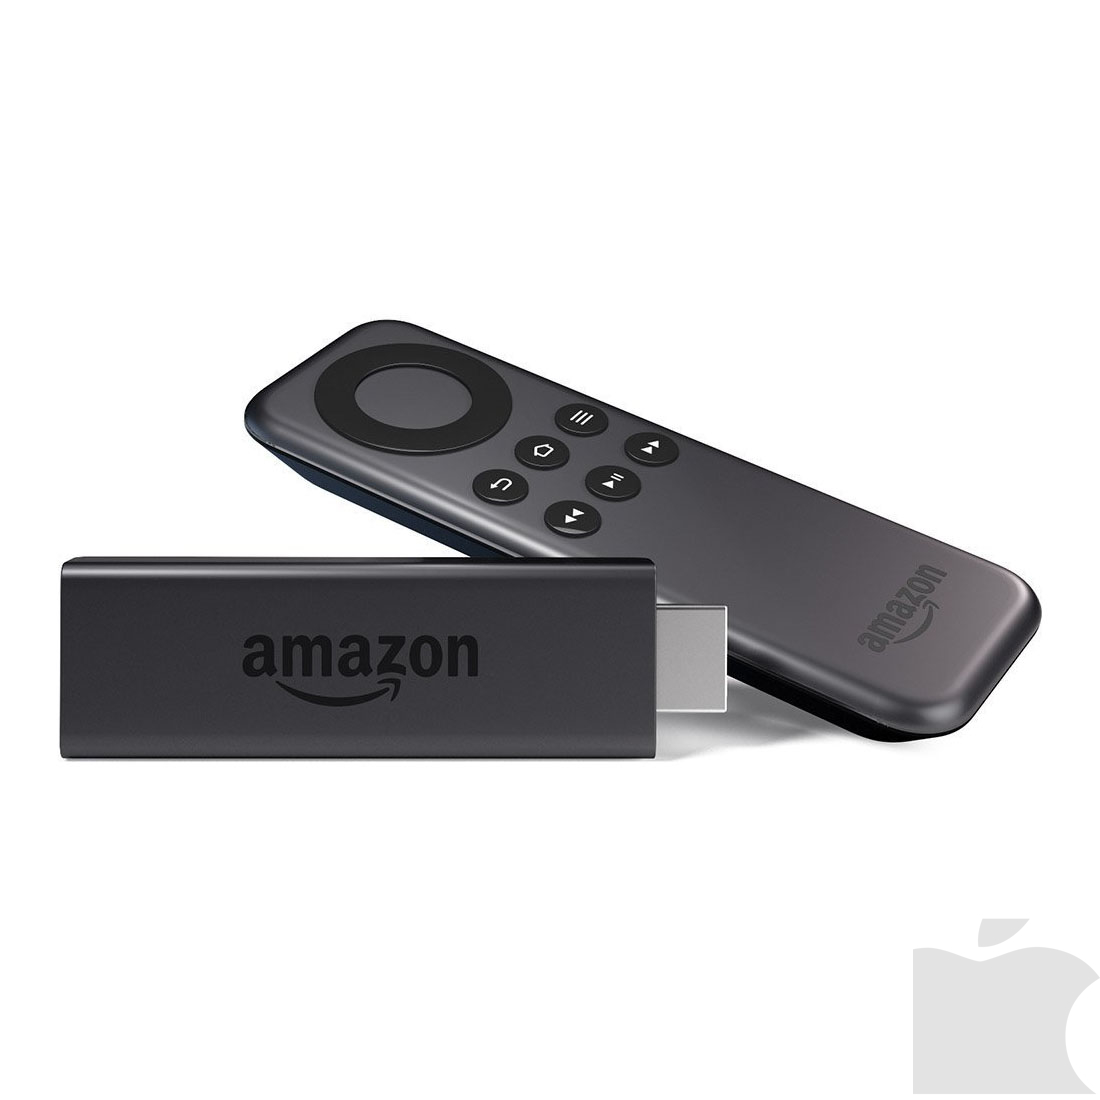 Amazon saca su Amazon Fire TV Stick.